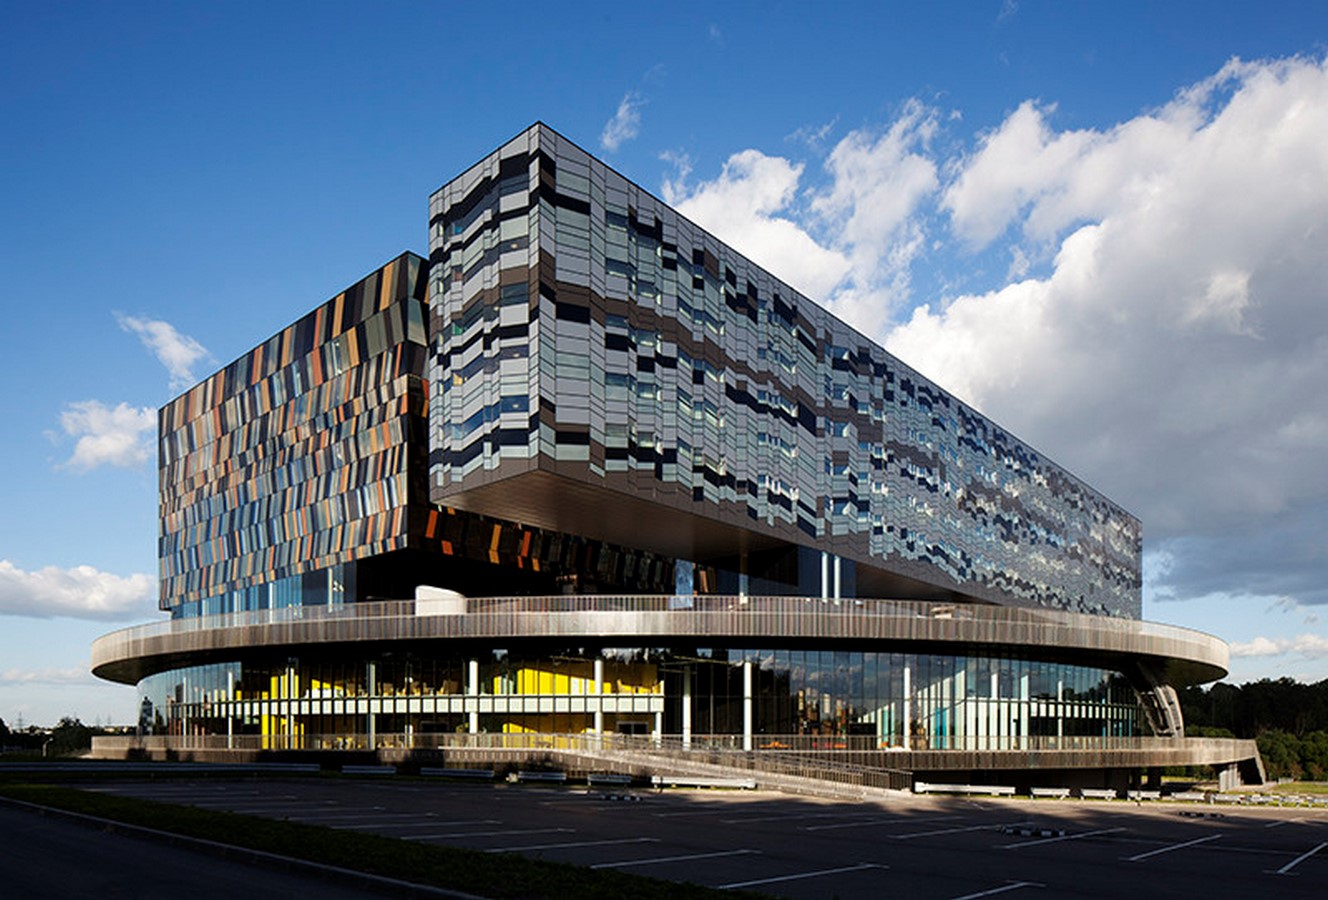 Moscow School of Management, Skolkovo, Russia by David Adjaye- Design inspired by Geometric Abstract Artwork - Sheet5